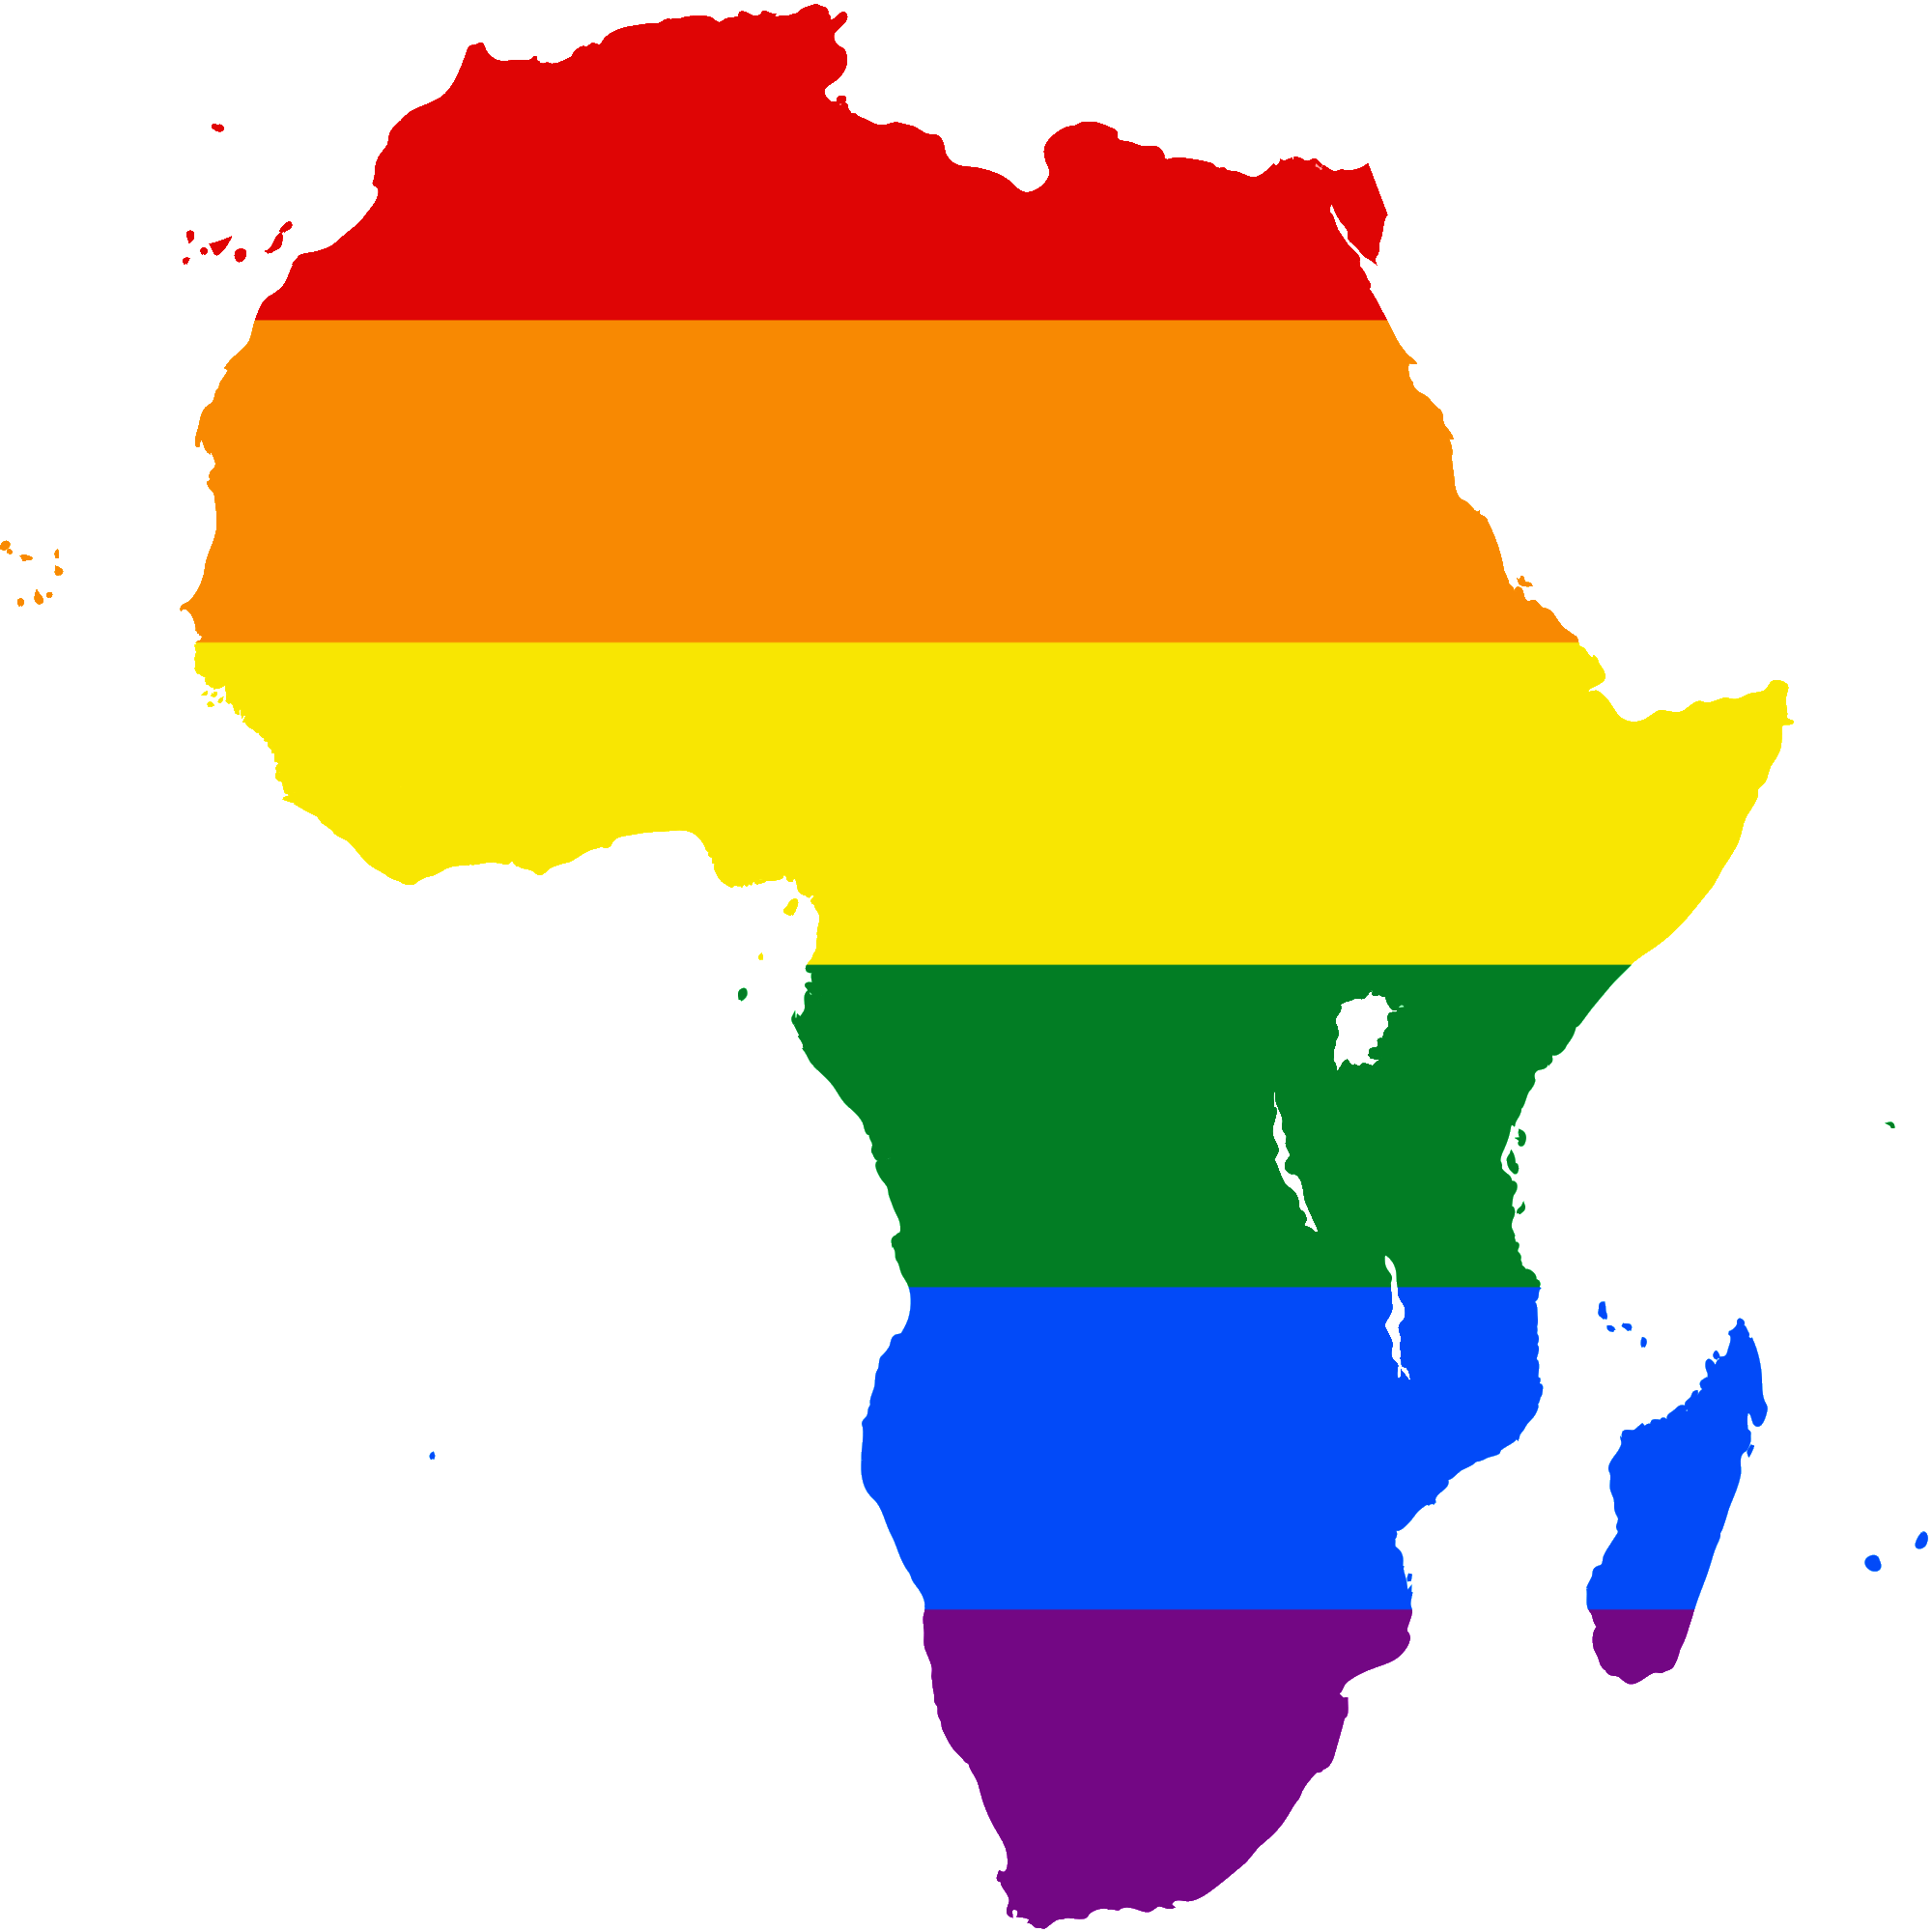 File:LGBT Flag map of Africa.png.